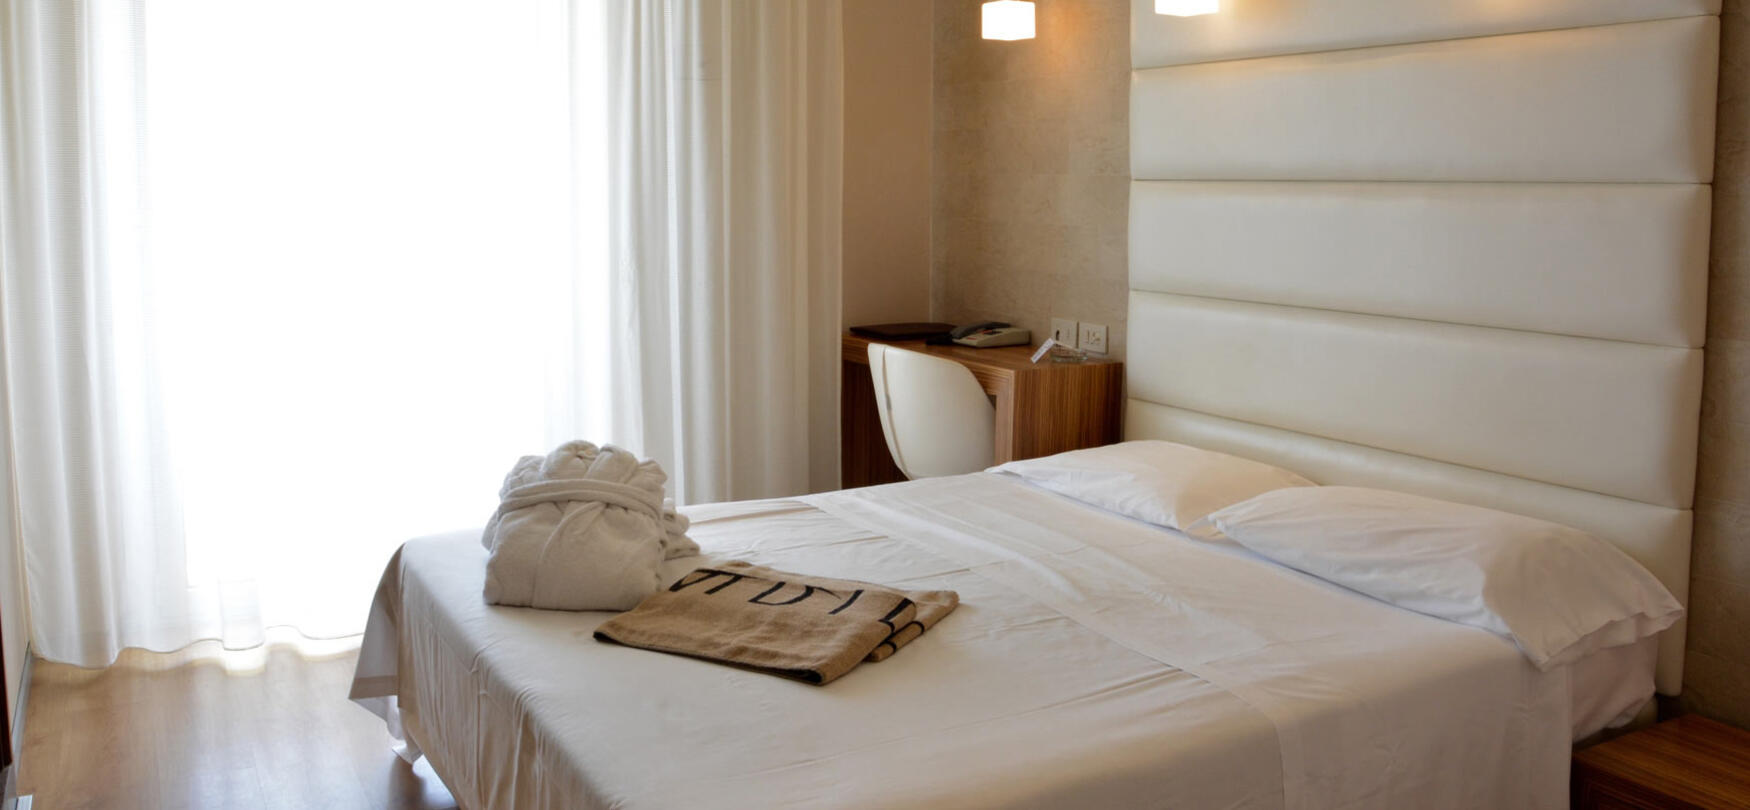 ambienthotels it camere-panoramic 006